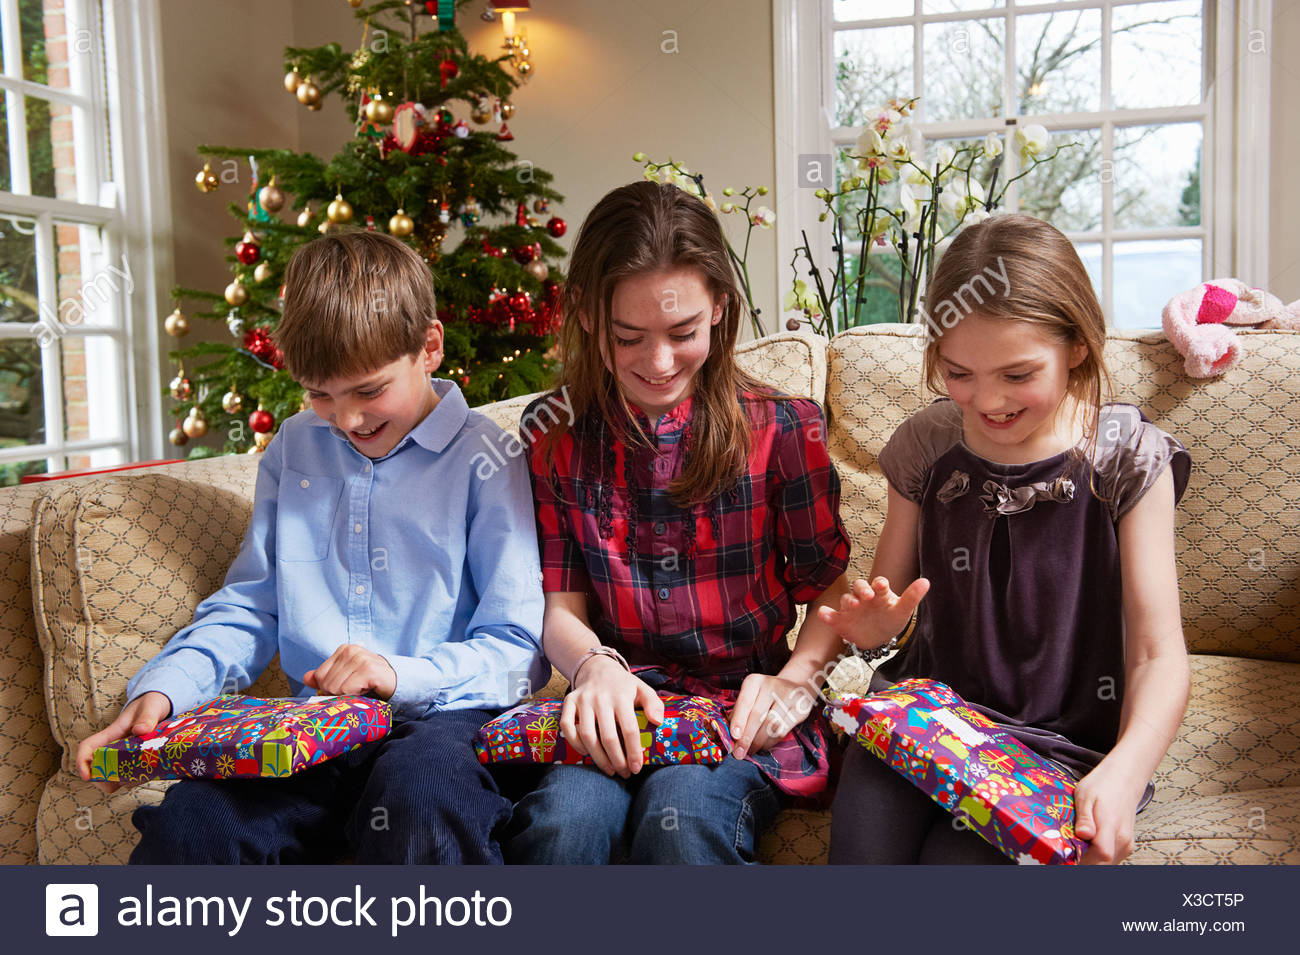 Children opening Christmas gifts Stock Photo: 277492258 - Alamy